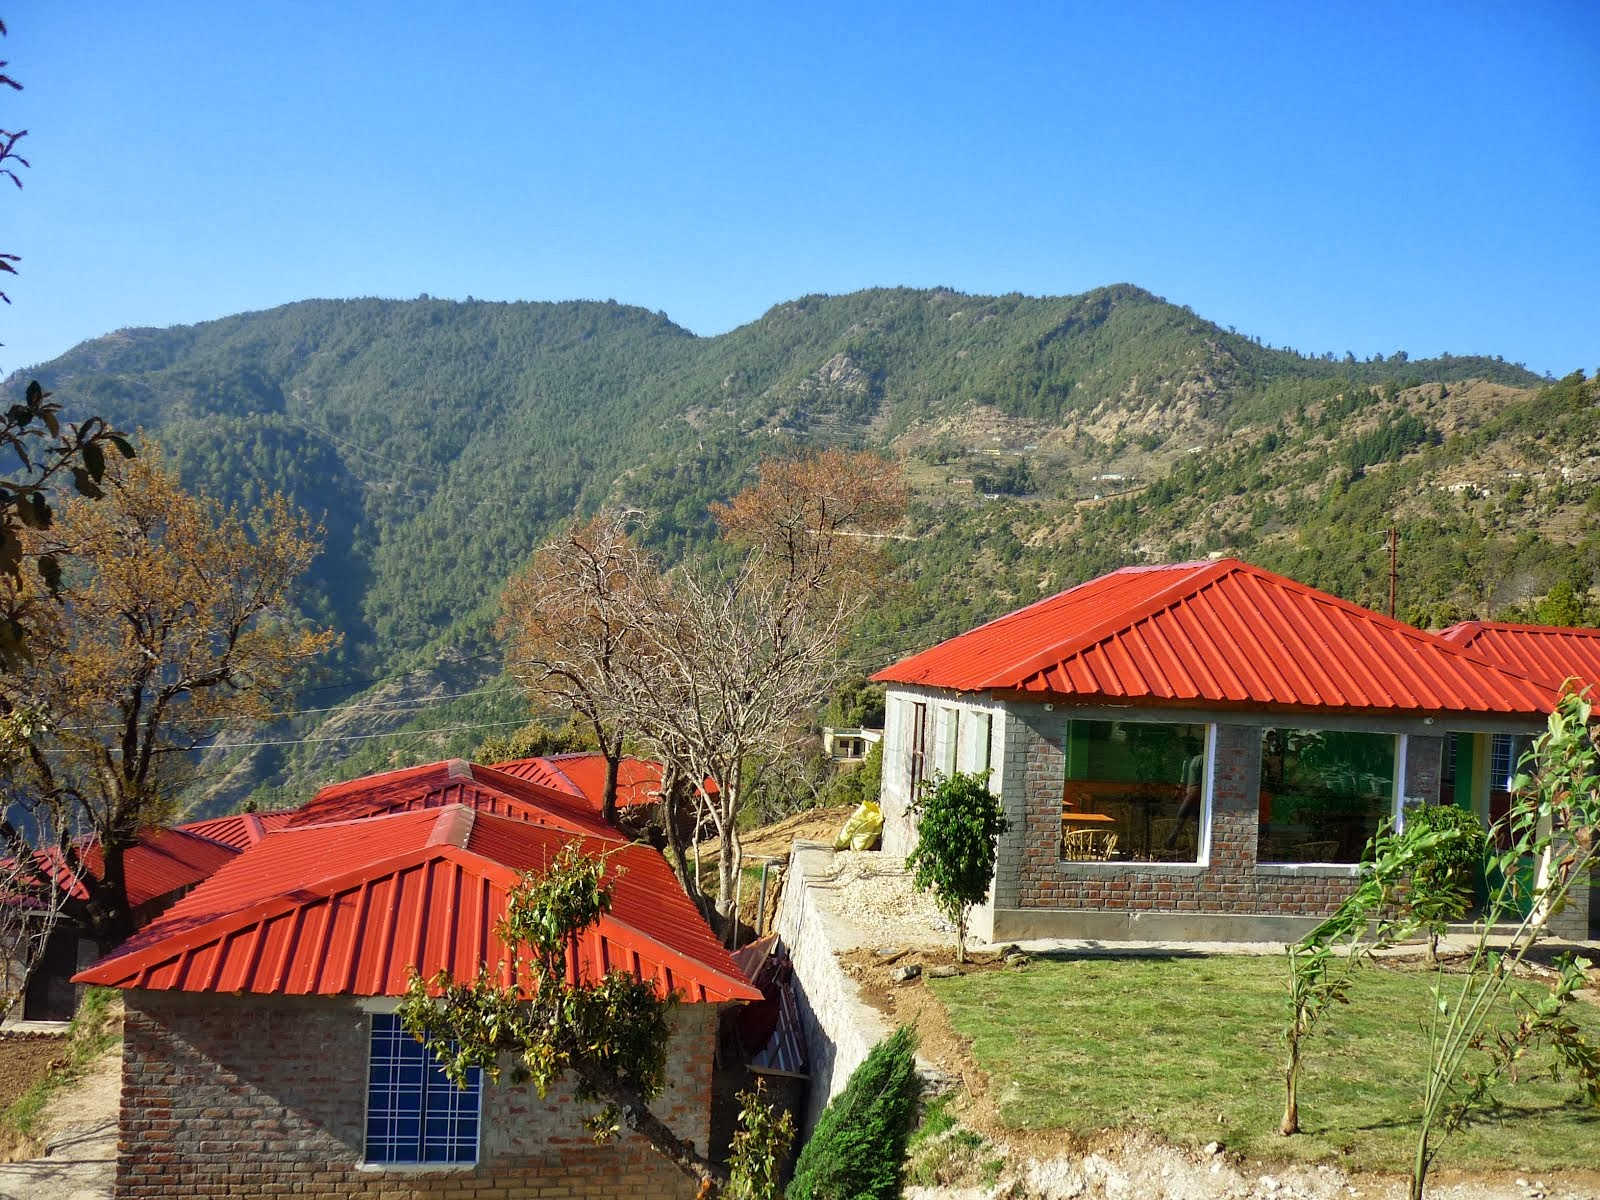 180 Degree Resort at Kanatal |Near Dhanualti | Uttarakhand | India